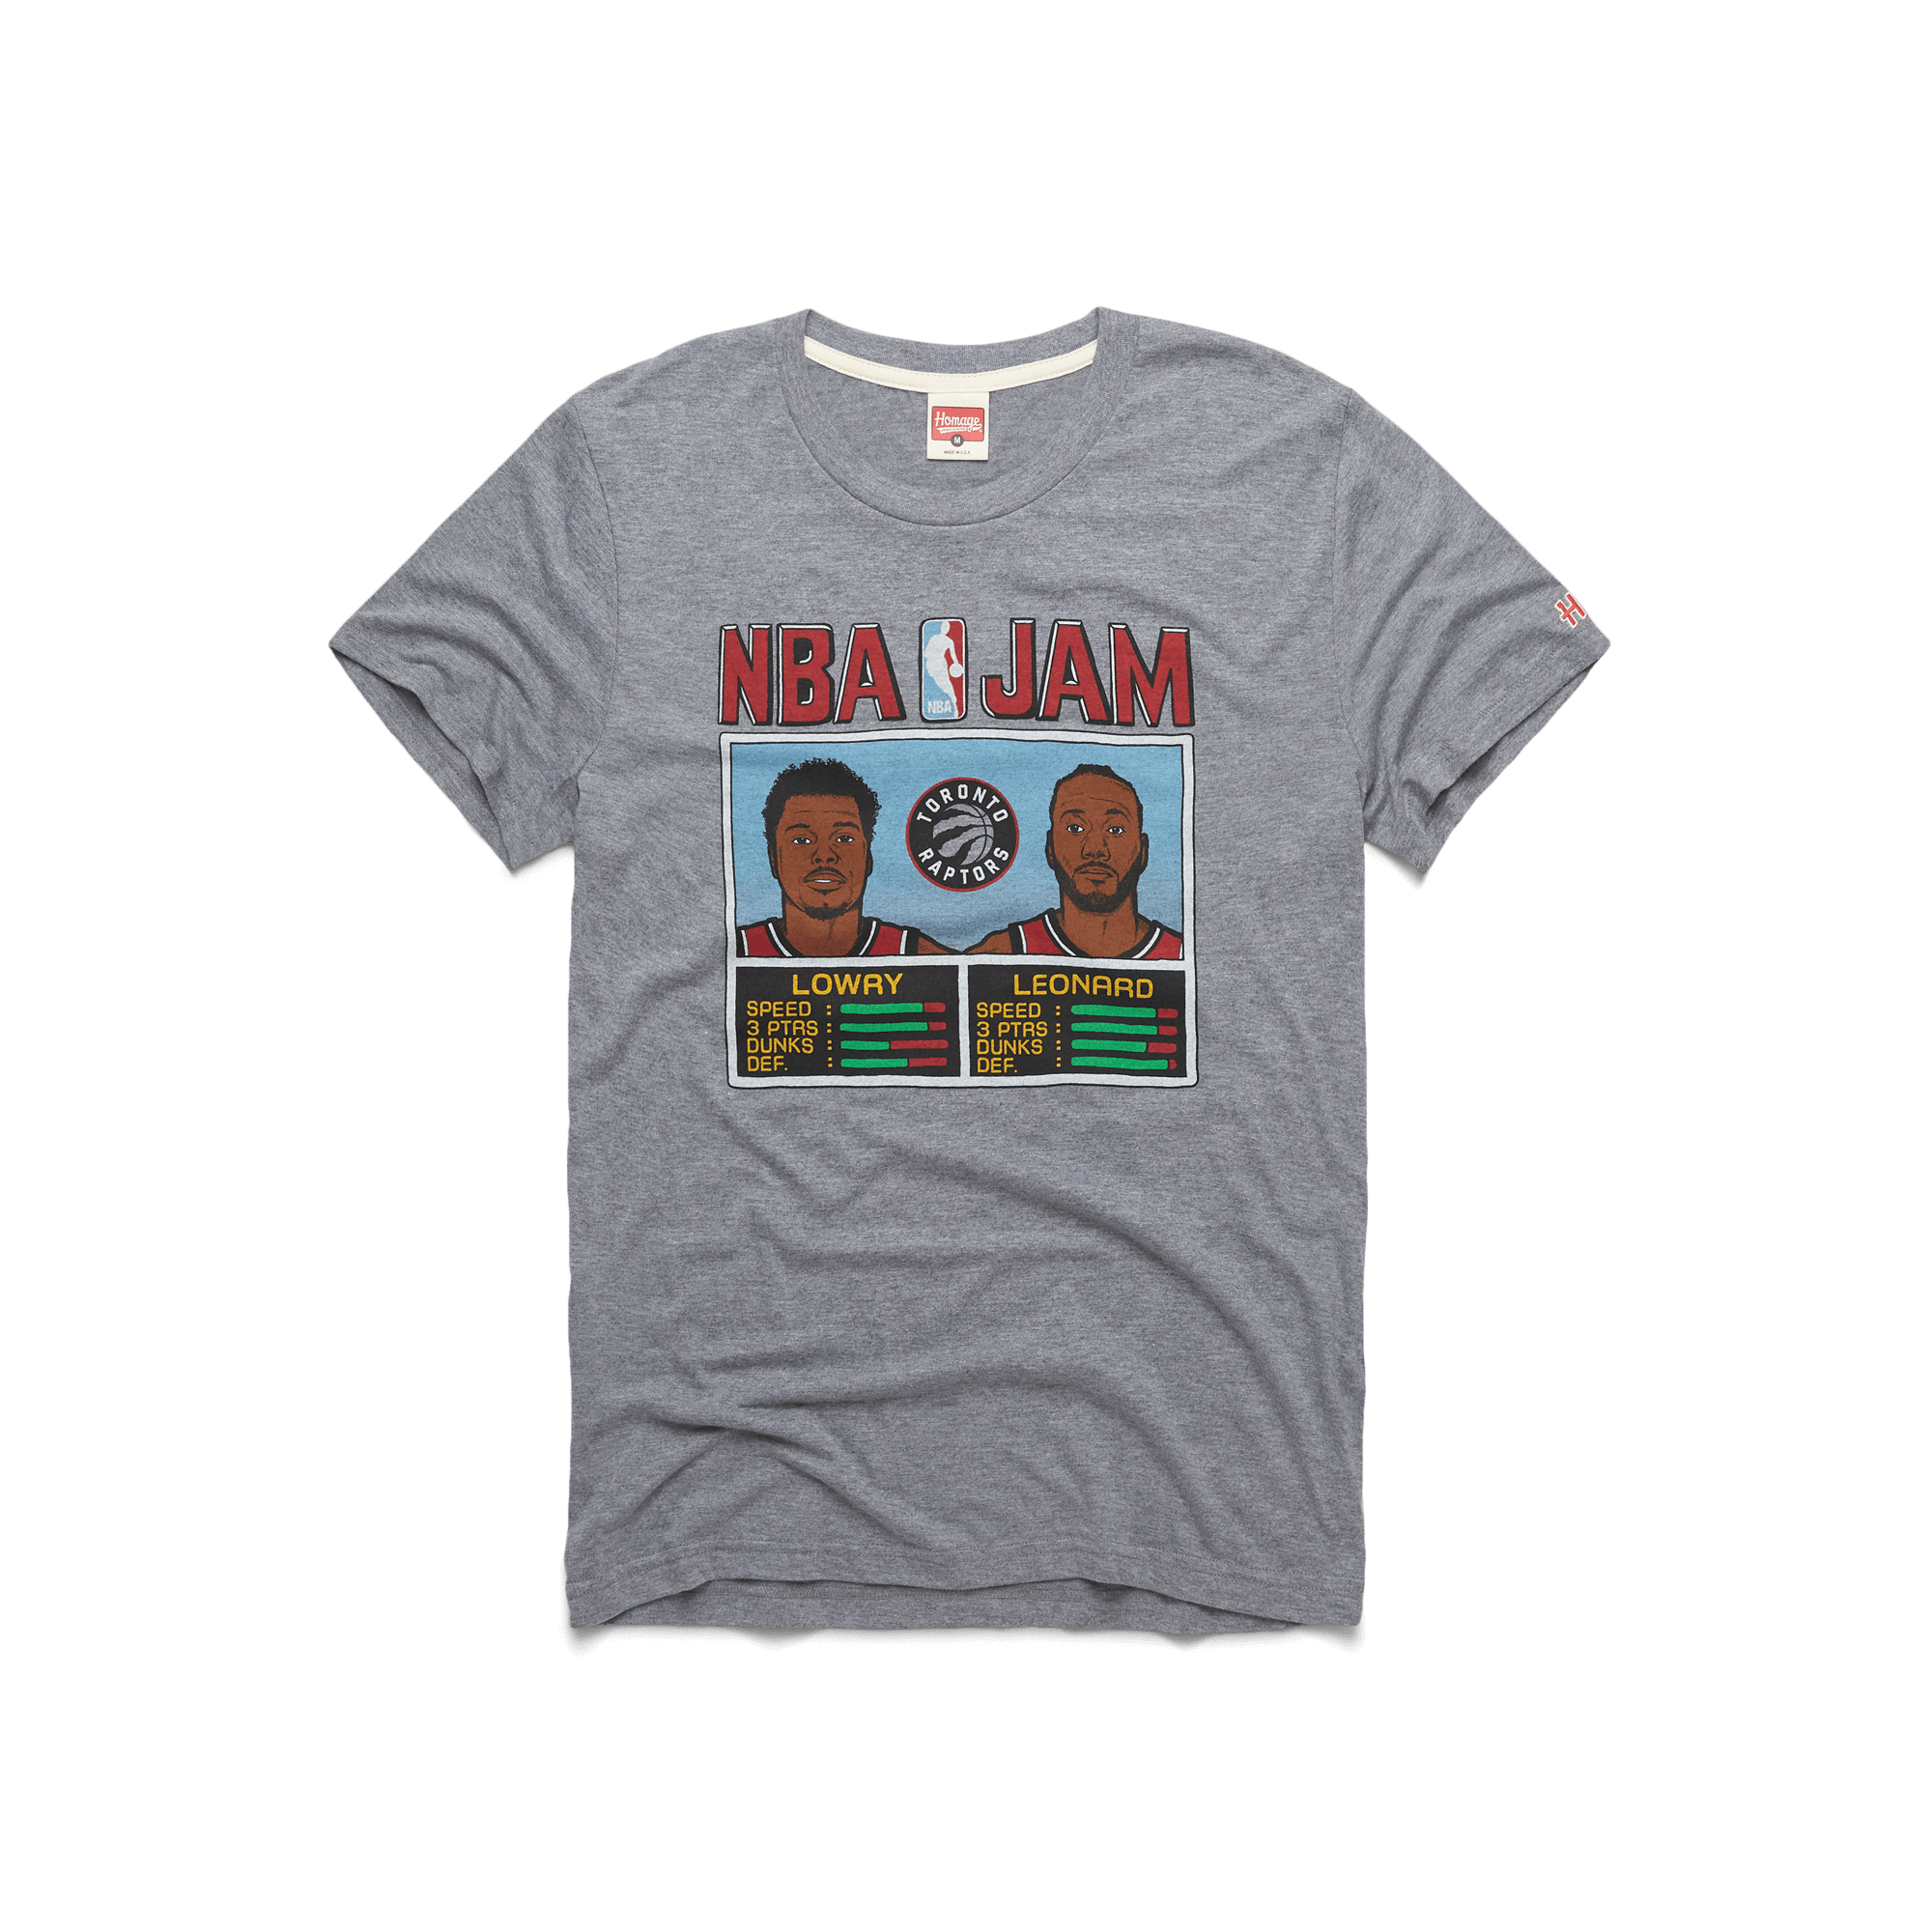 45a9af1fc Retro NBA Jam Basketball Video Game Arcade Apparel – HOMAGE